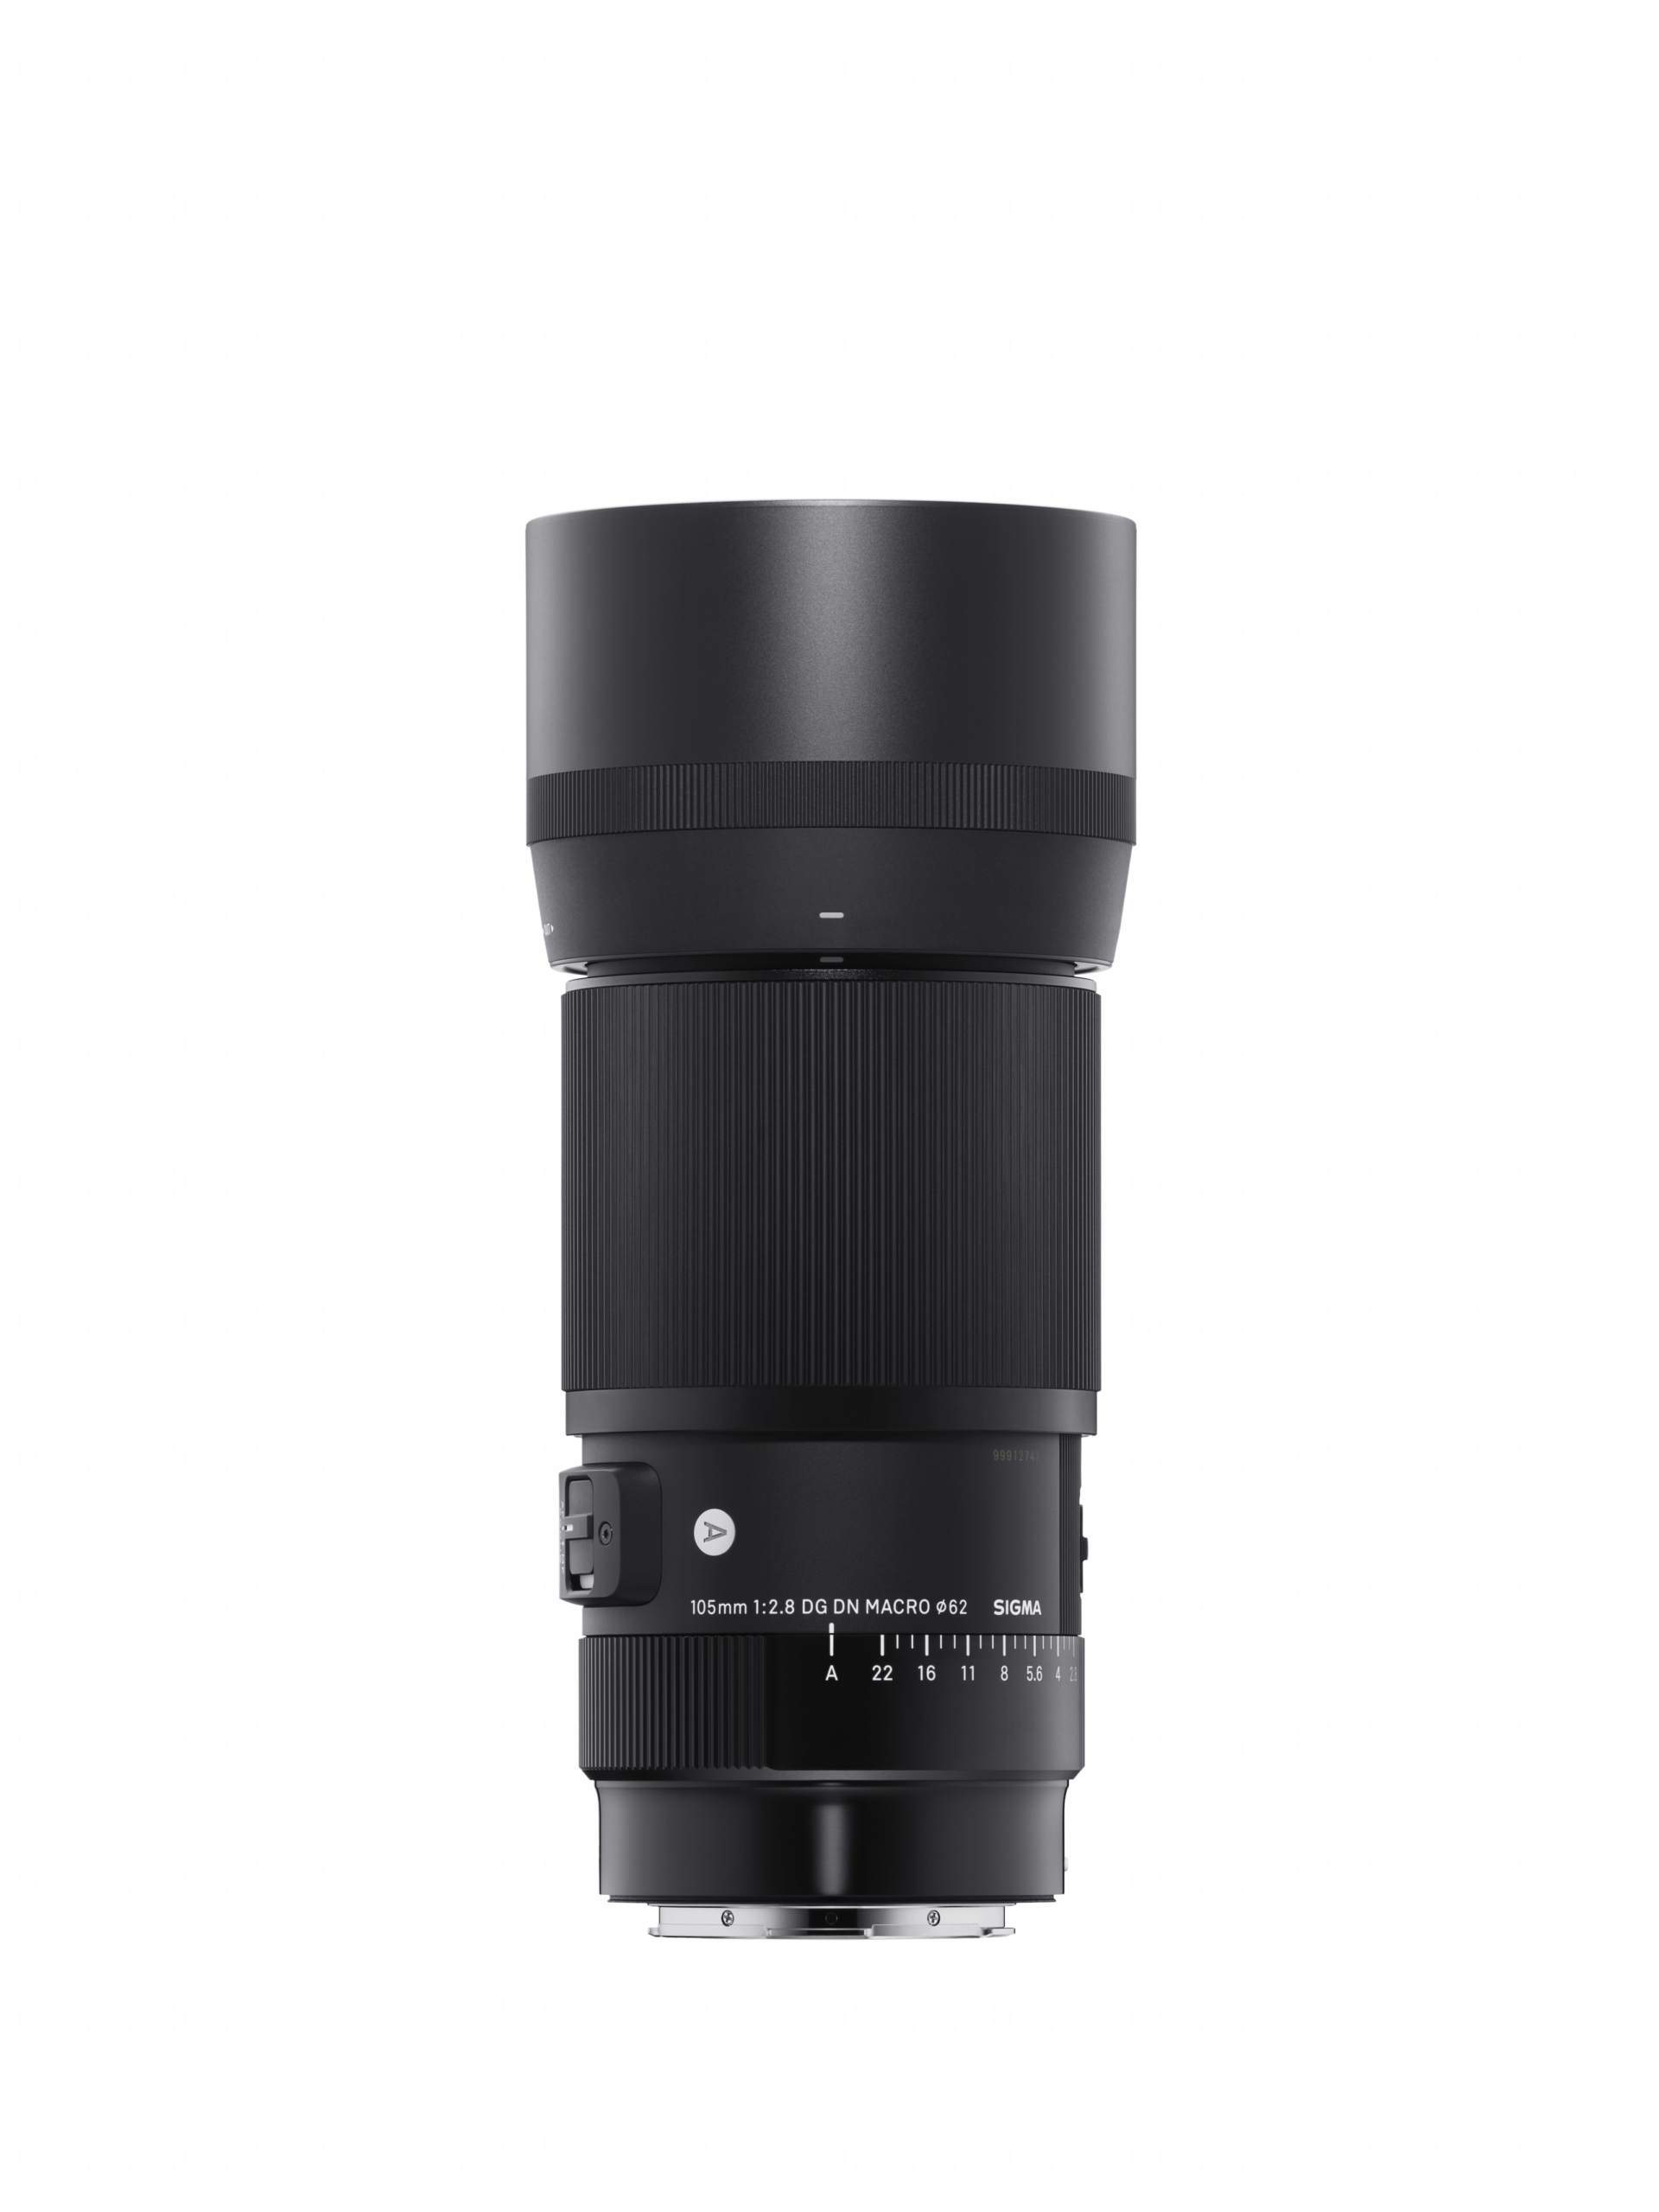 Sigma 105mm for Sony